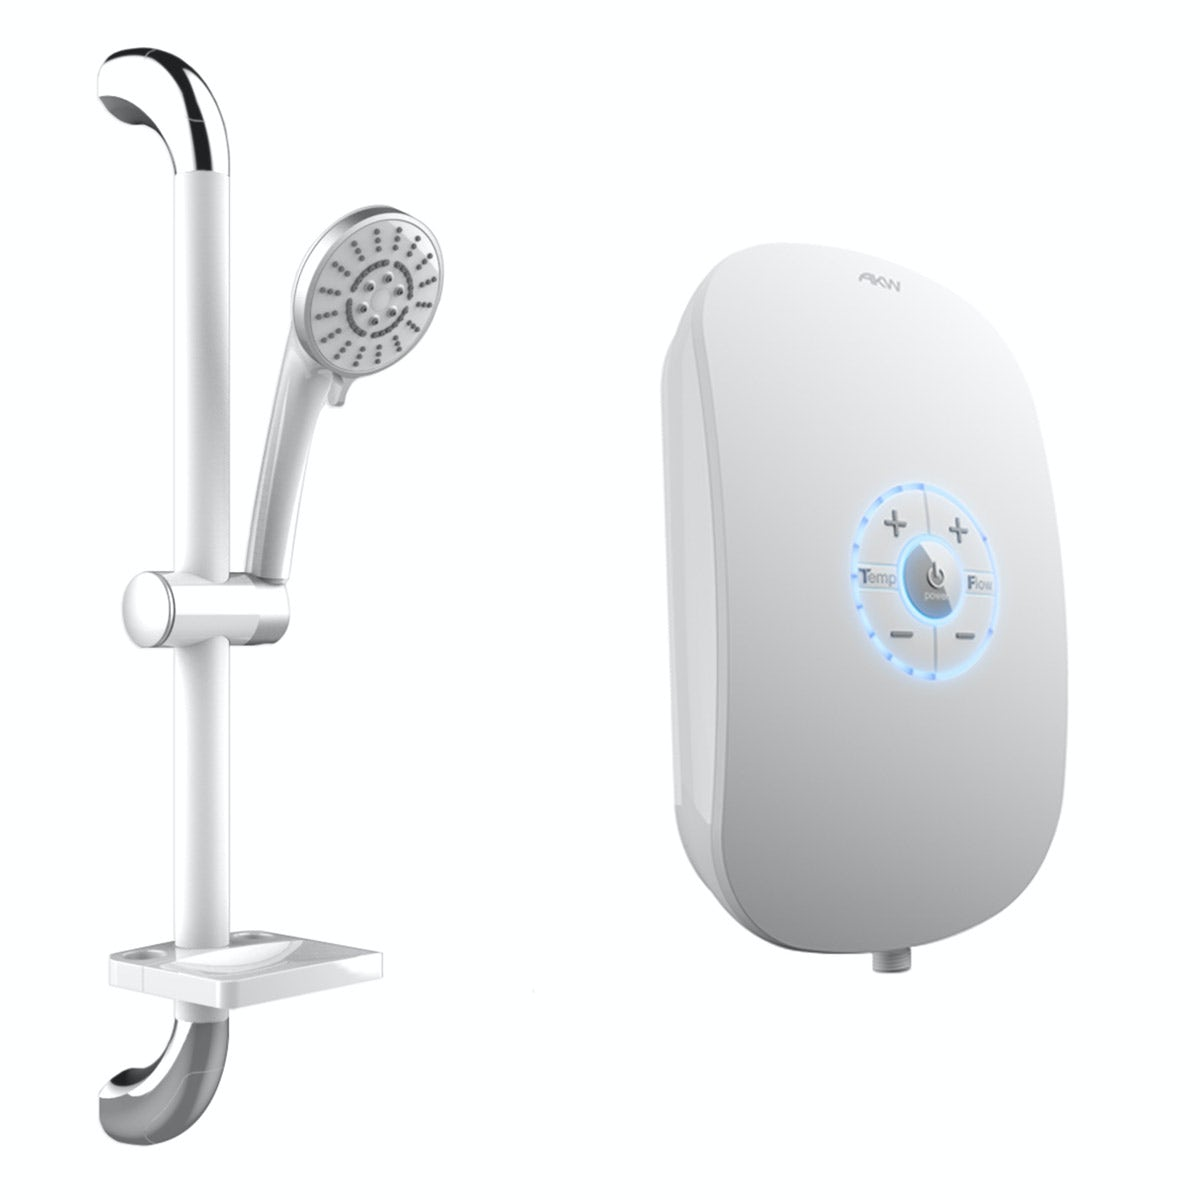 AKW Icare 8.5kw Electric Shower White